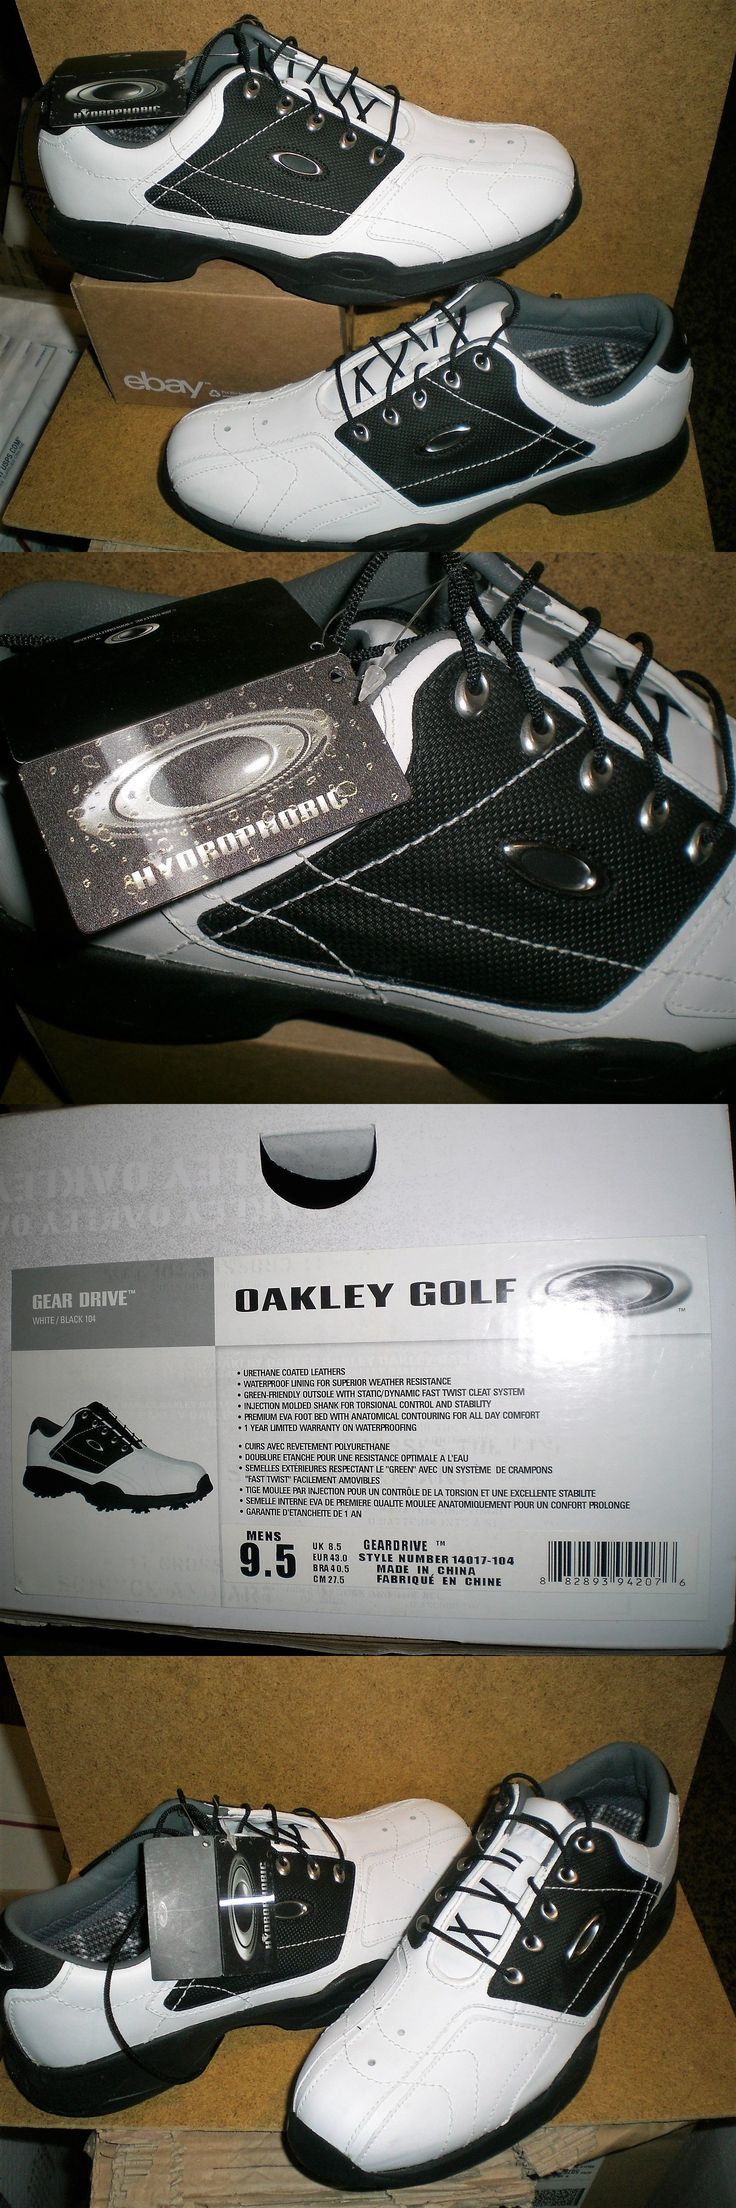 Other Mens Golf Clothing 181141: New Oakley Golf Shoe Men S 9.5 Gear Drive Black White Waterproof Beautiful Nwob -> BUY IT NOW ONLY: $44.88 on eBay!